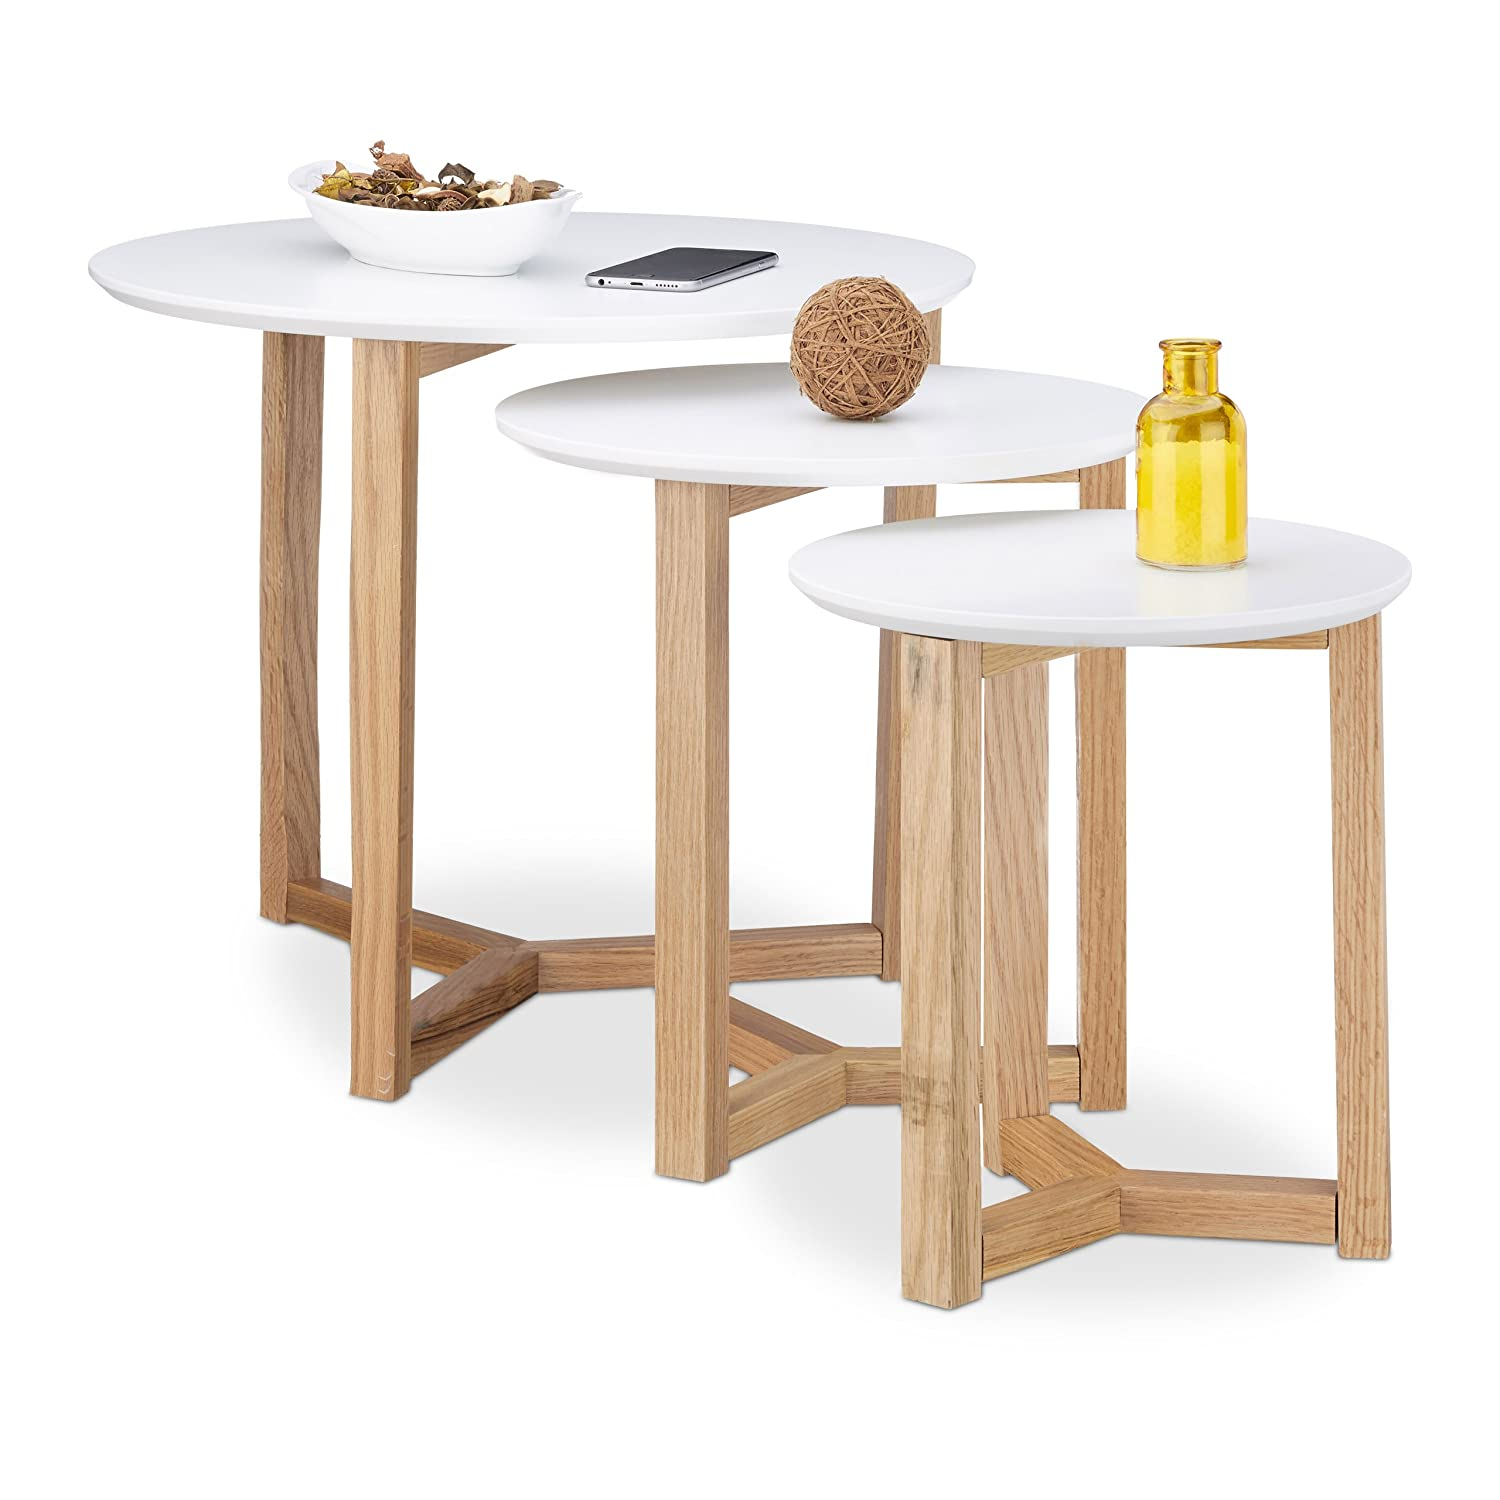 Relaxdays Set of 3 End Tables, Oiled Oak Wood, White Table Top of 50, 35 And 30 cm, Nordic Design, White/Natural Brown, Wood, White/Brown 10020652